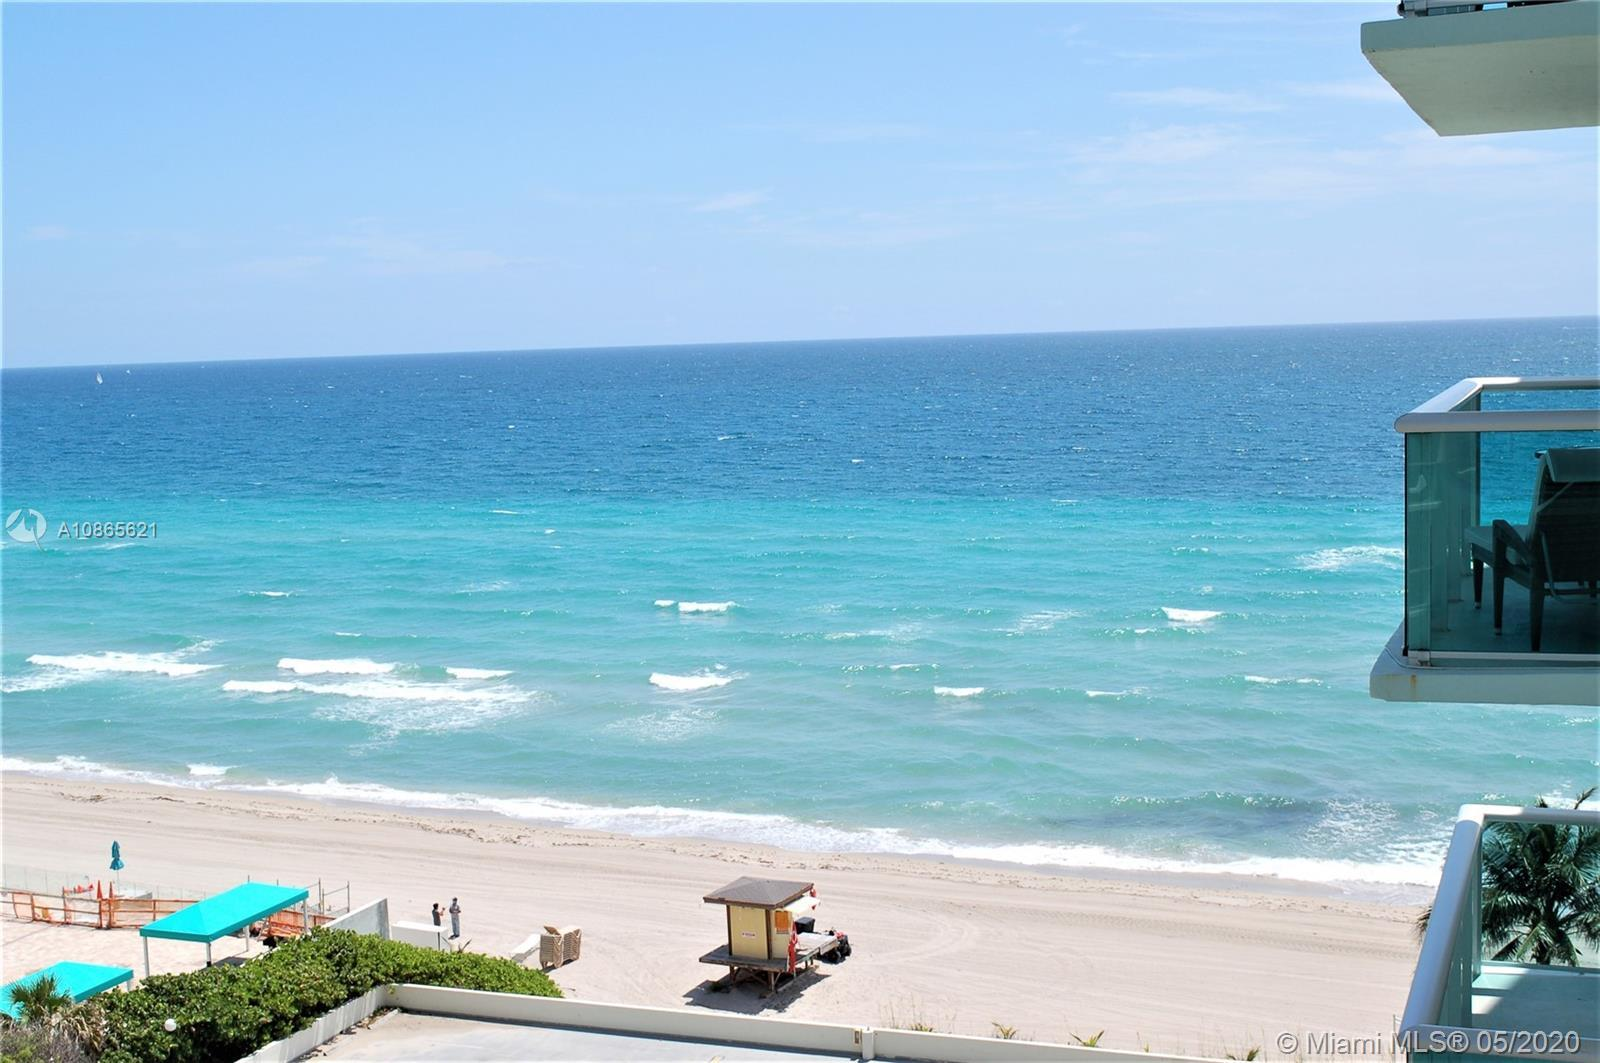 Breathtaking 1 bedroom right on the beach!glass balcony with ocean view.If you are looking for a gre